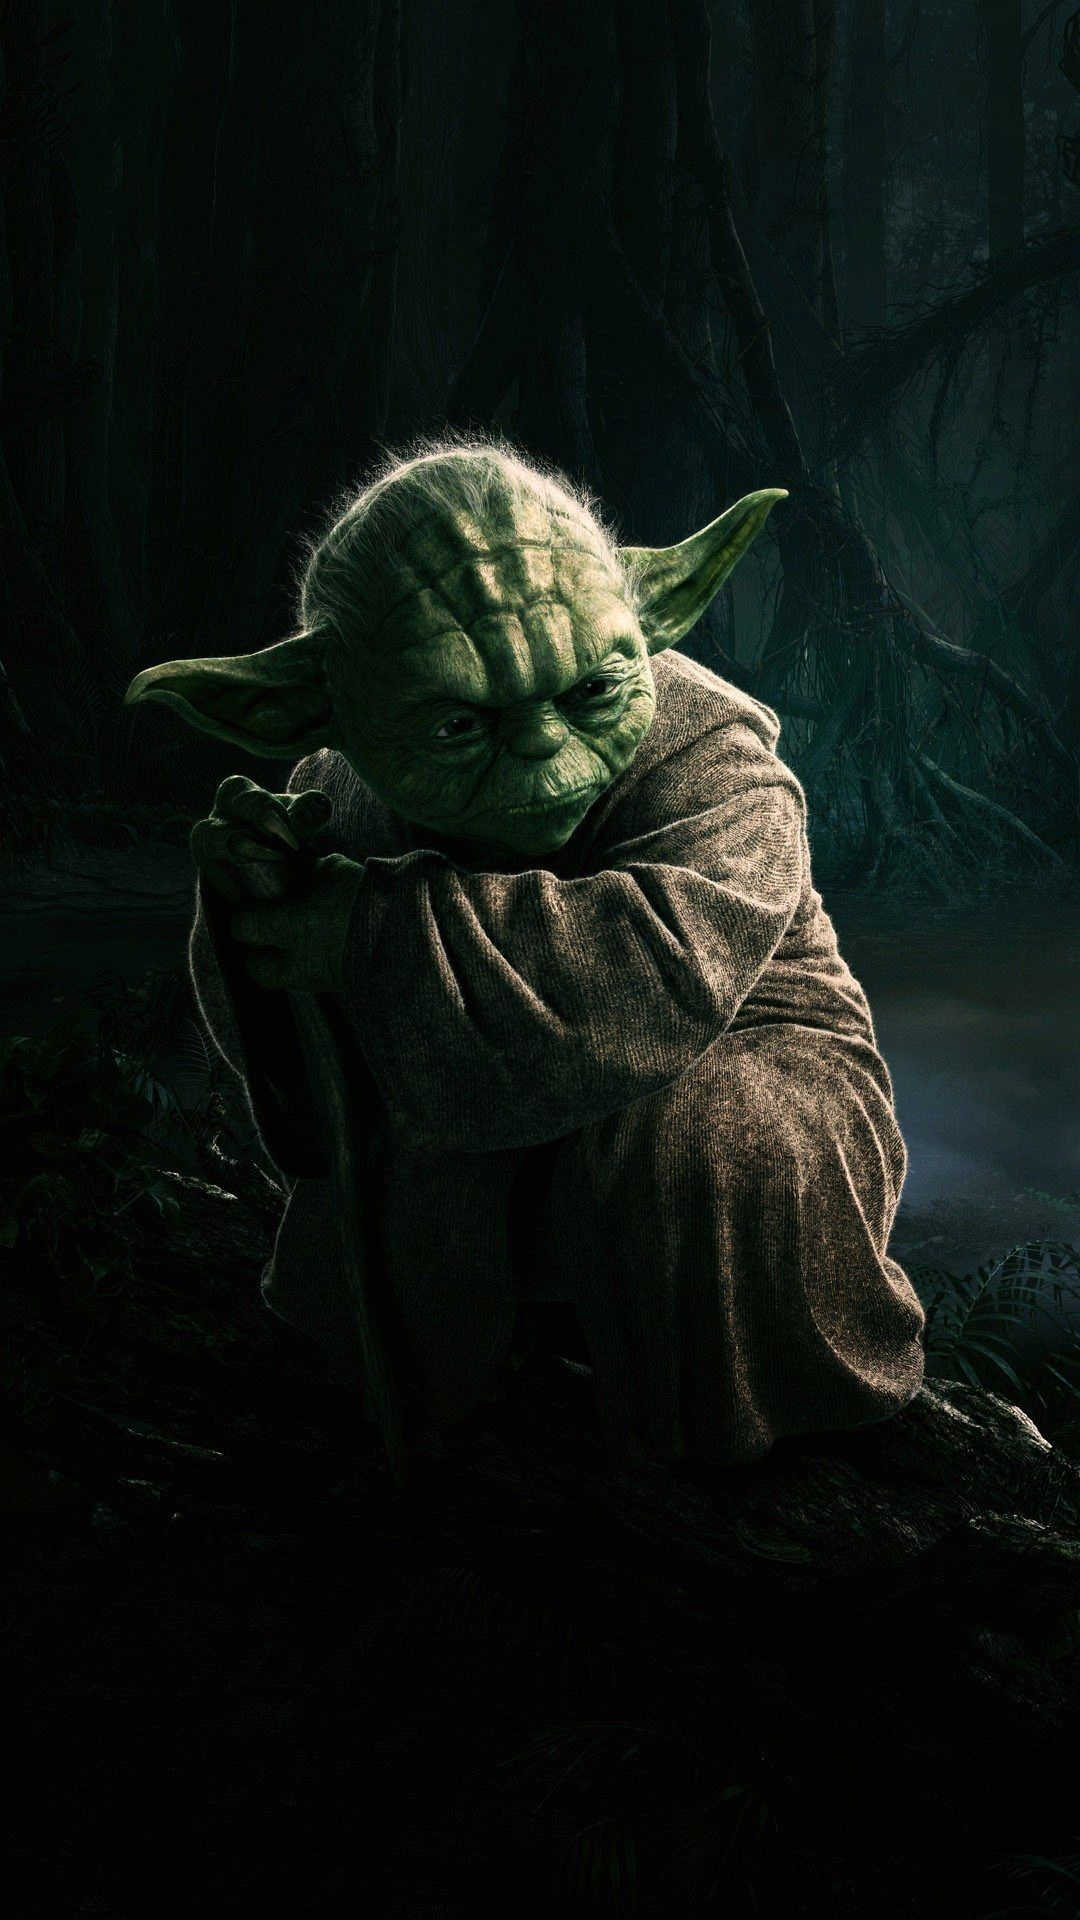 Yoda Star Wars Phone Wallpapers Top Free Yoda Star Wars Phone Backgrounds Wallpaperaccess